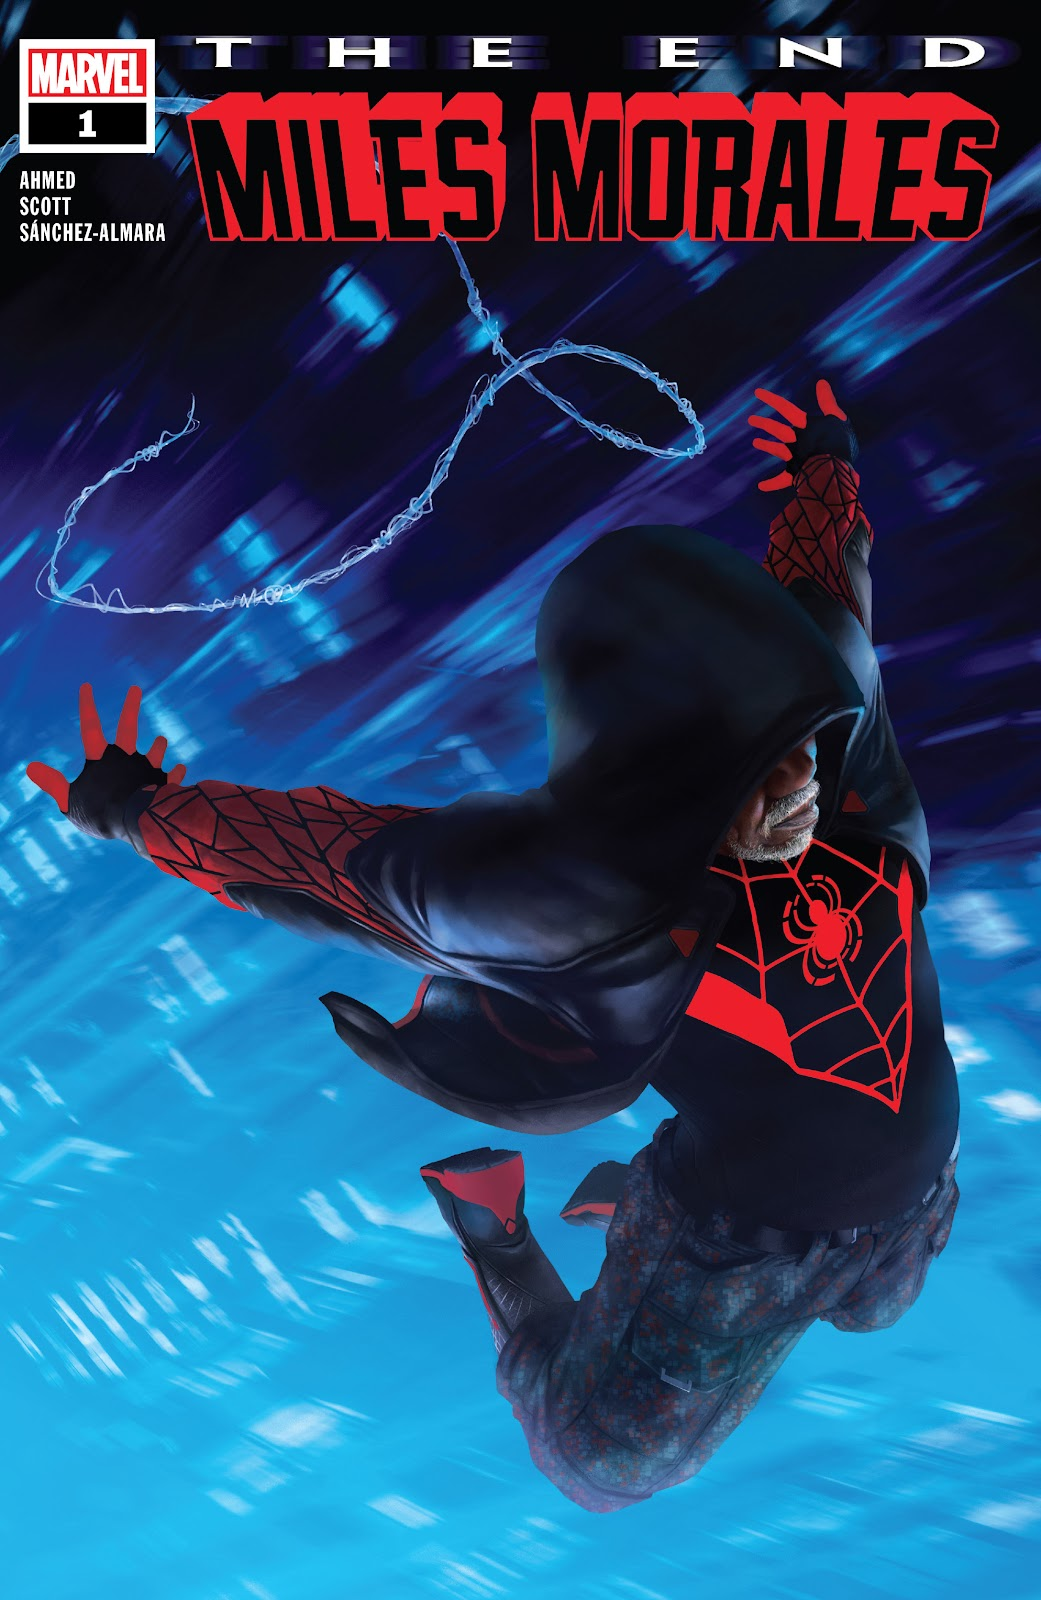 Read online Miles Morales: The End comic -  Issue # Full - 1